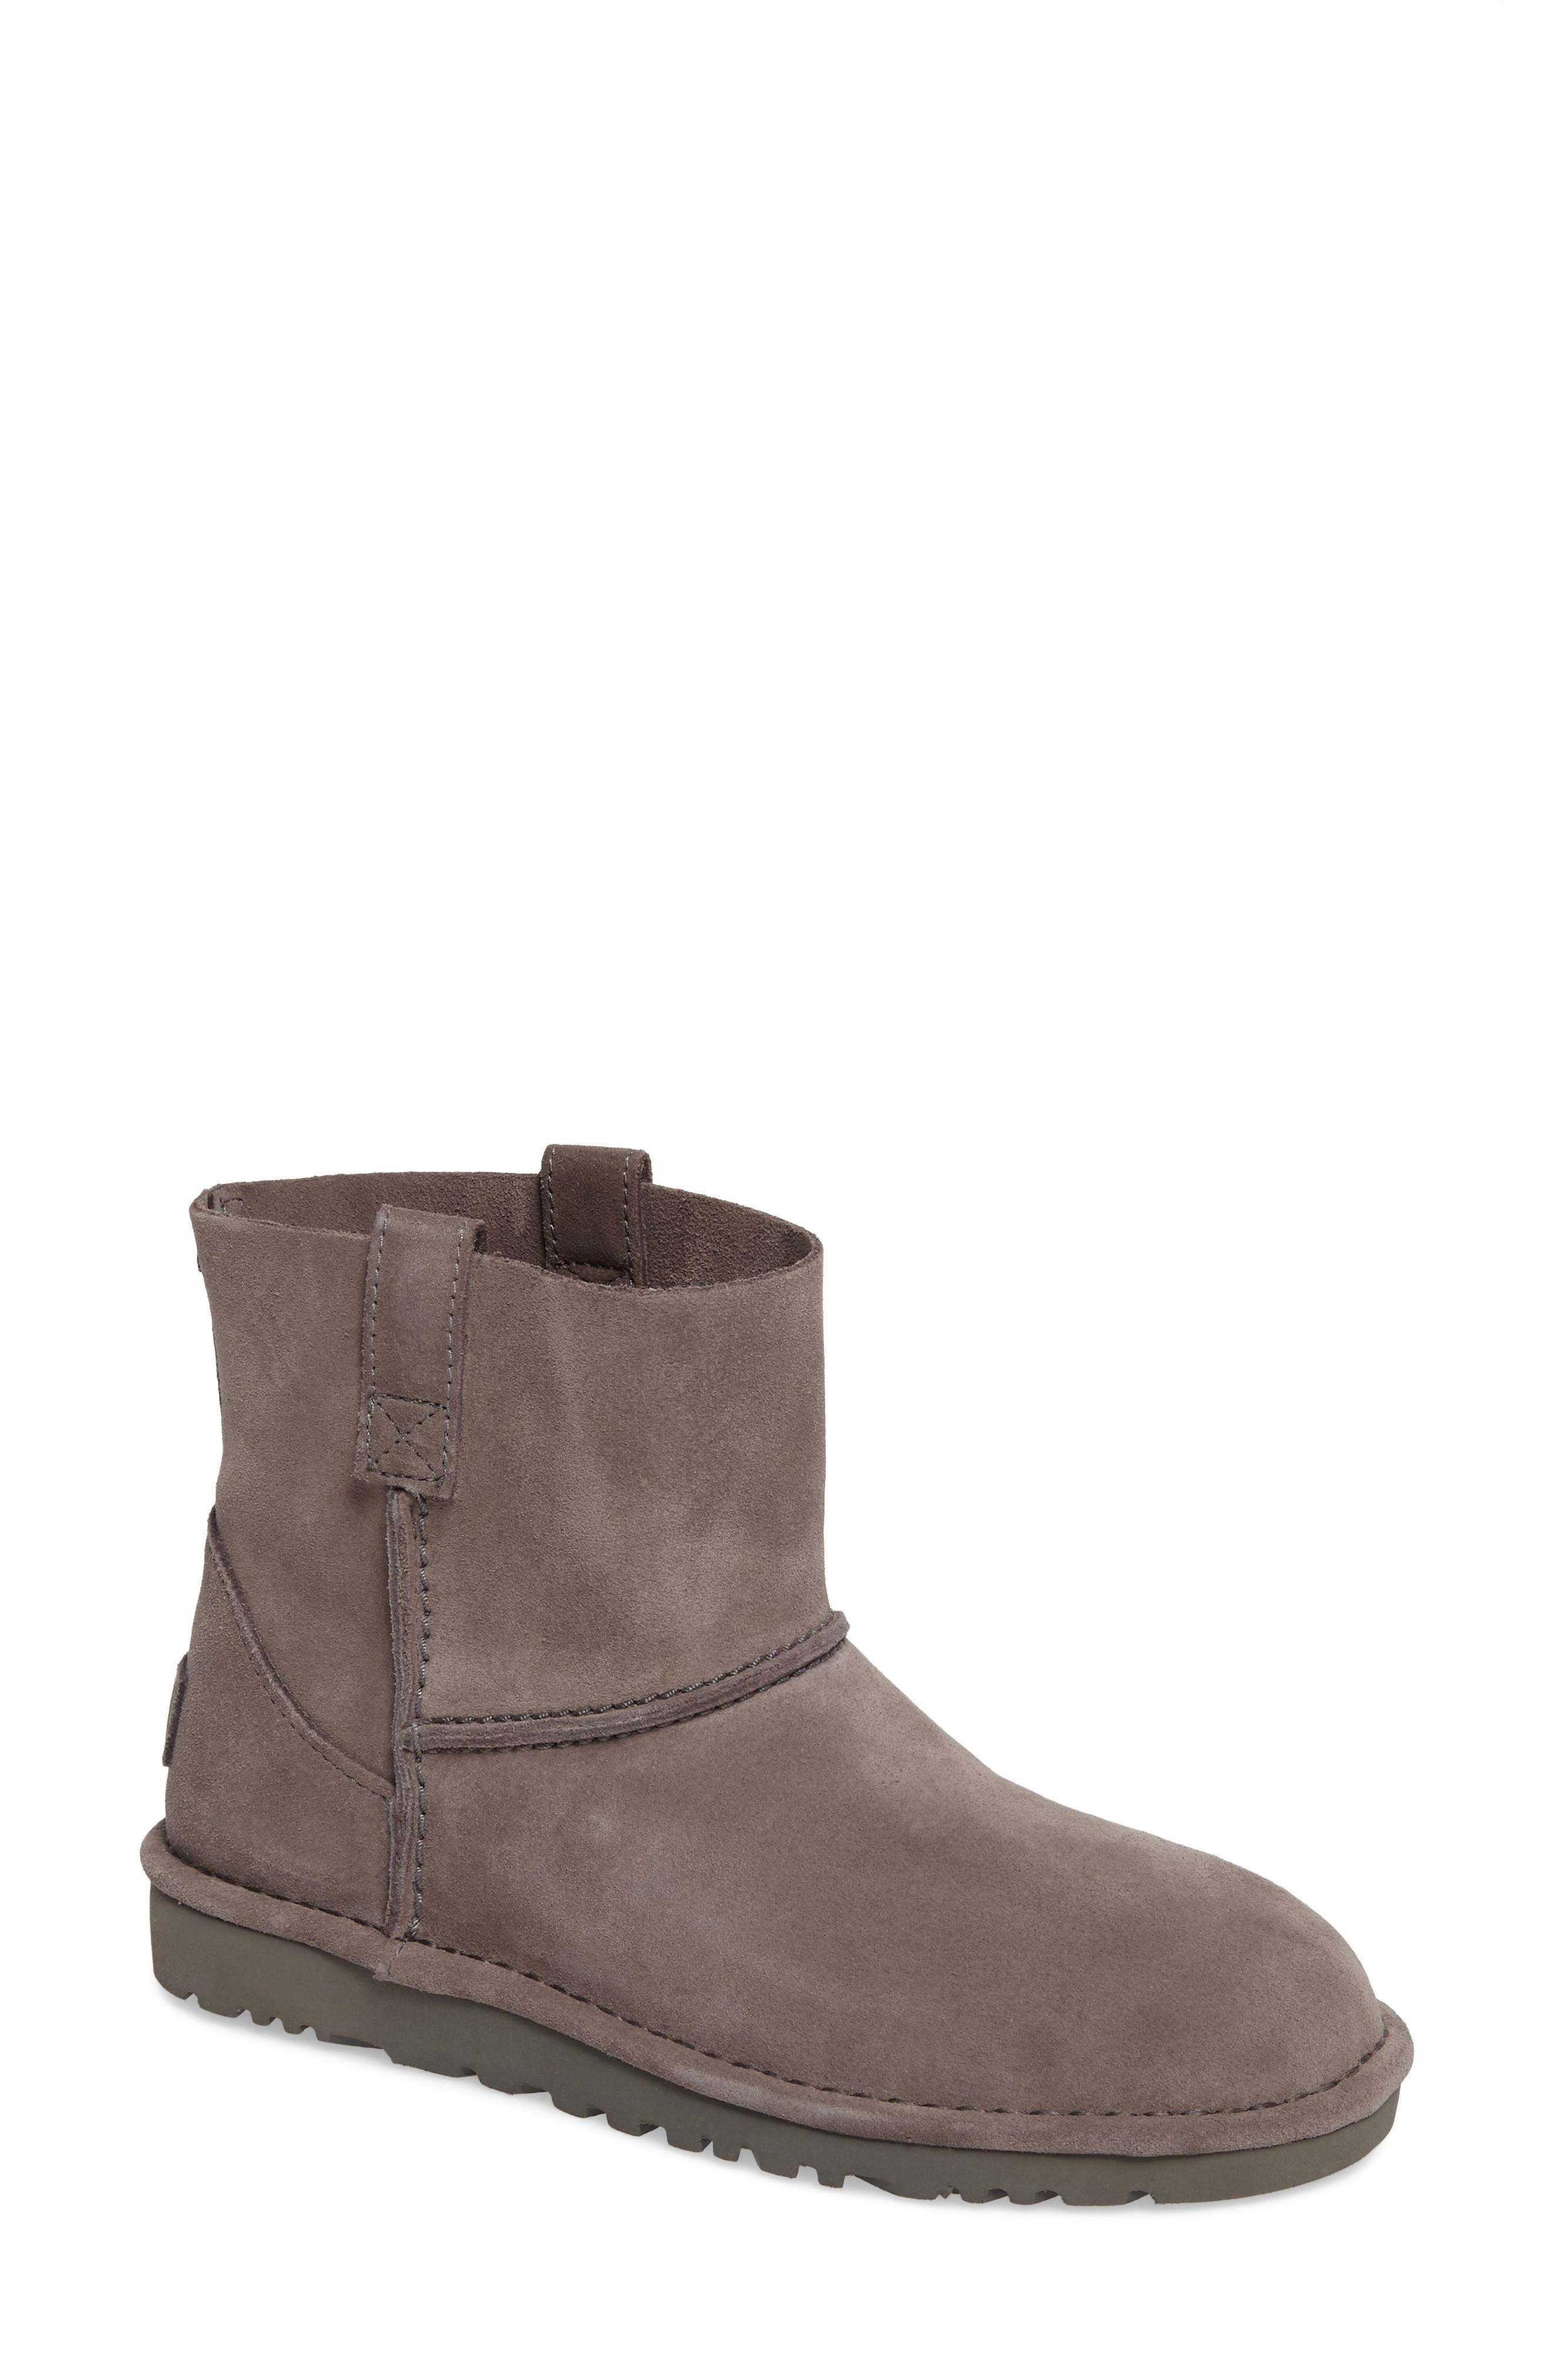 Alternate Image 1 Selected - UGG® Classic Unlined Mini Boot (Women)